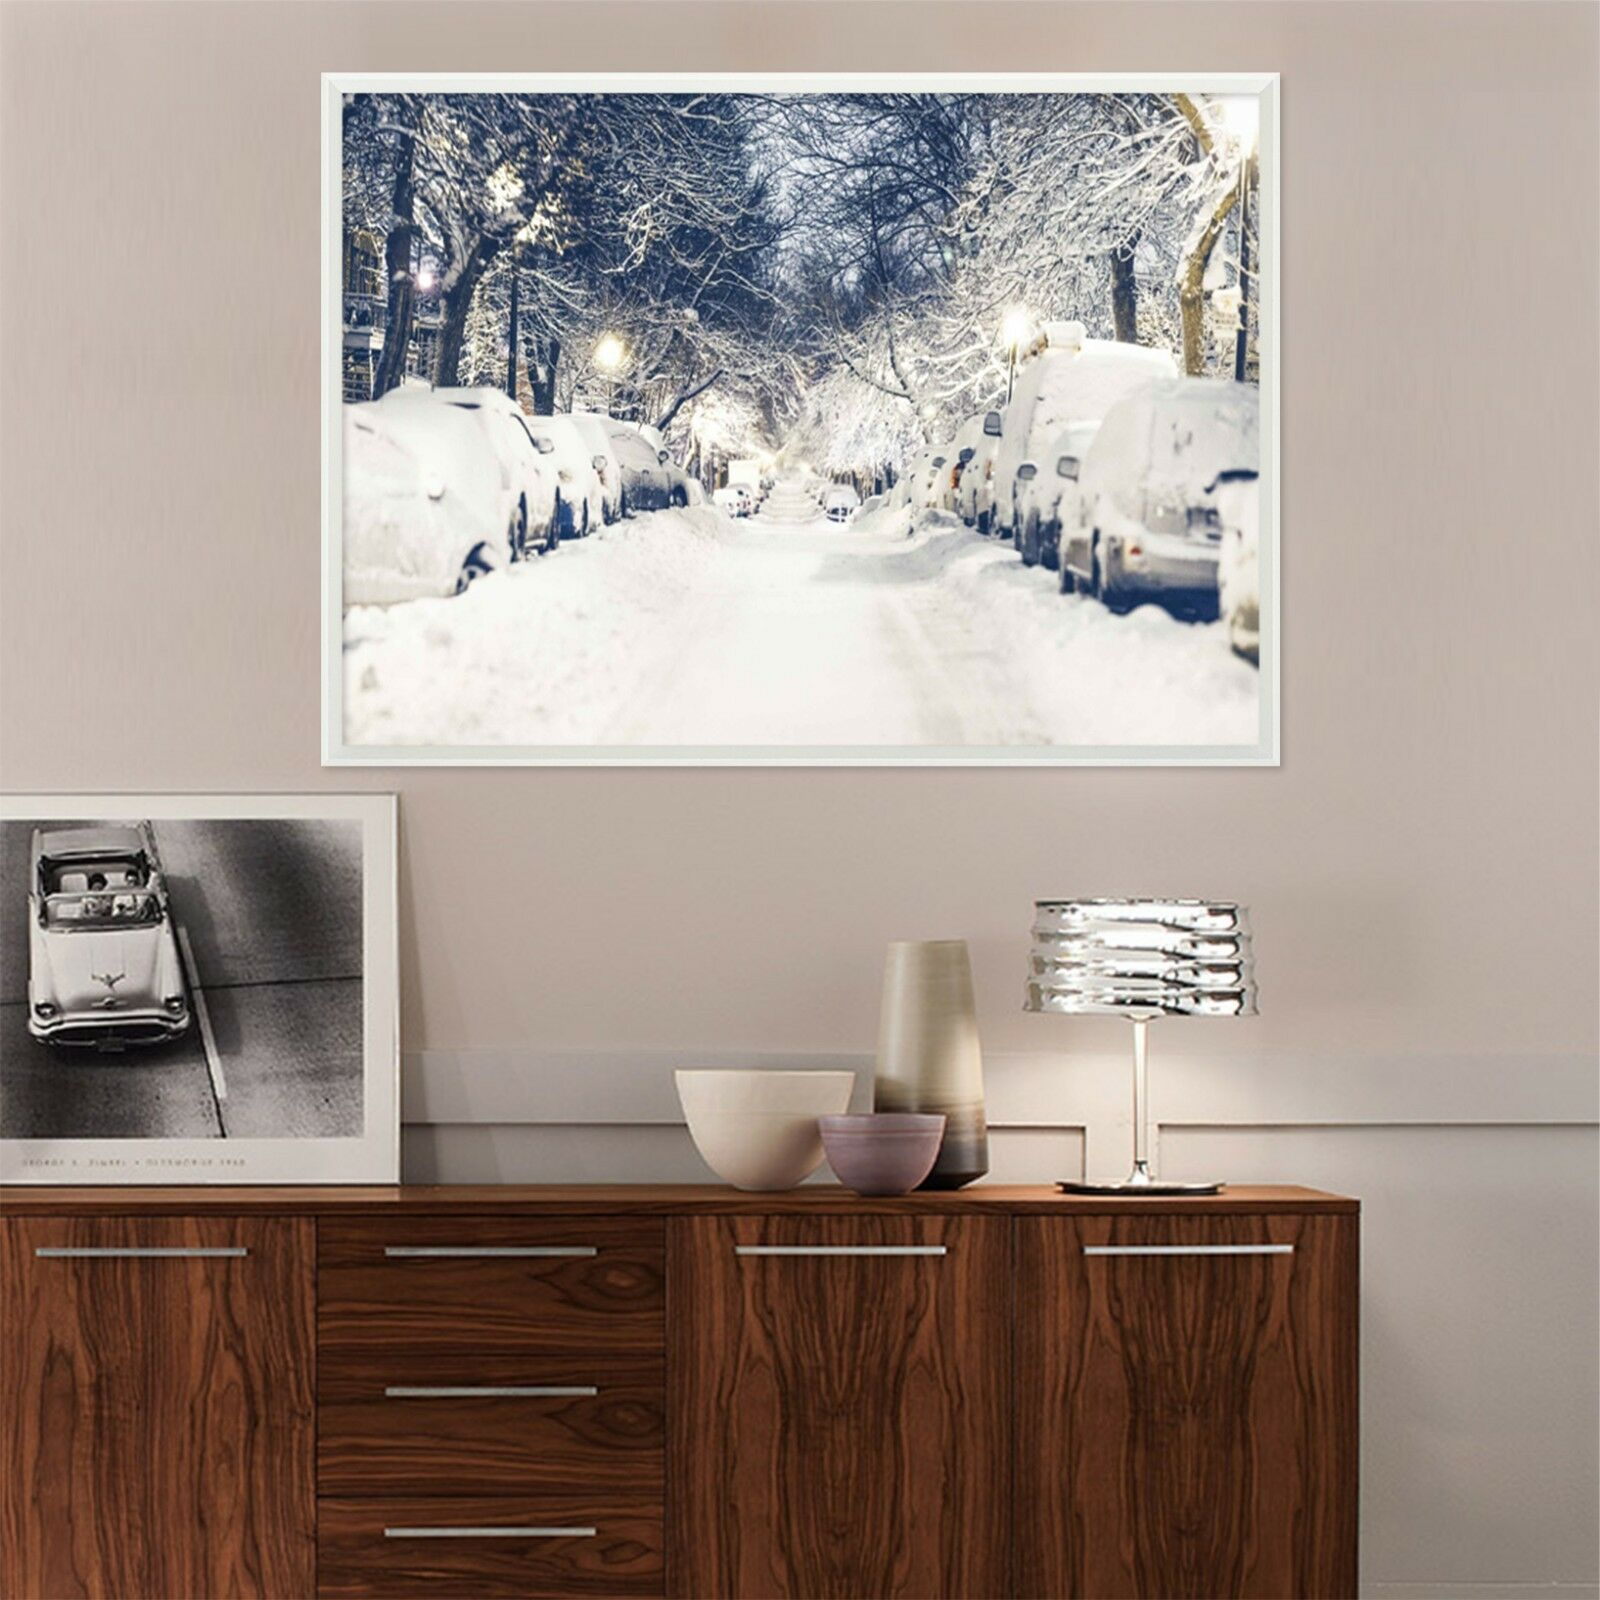 3D Street Car Snow Scene 2 Framed Poster Home Decor Print Painting Art WALLPAPER